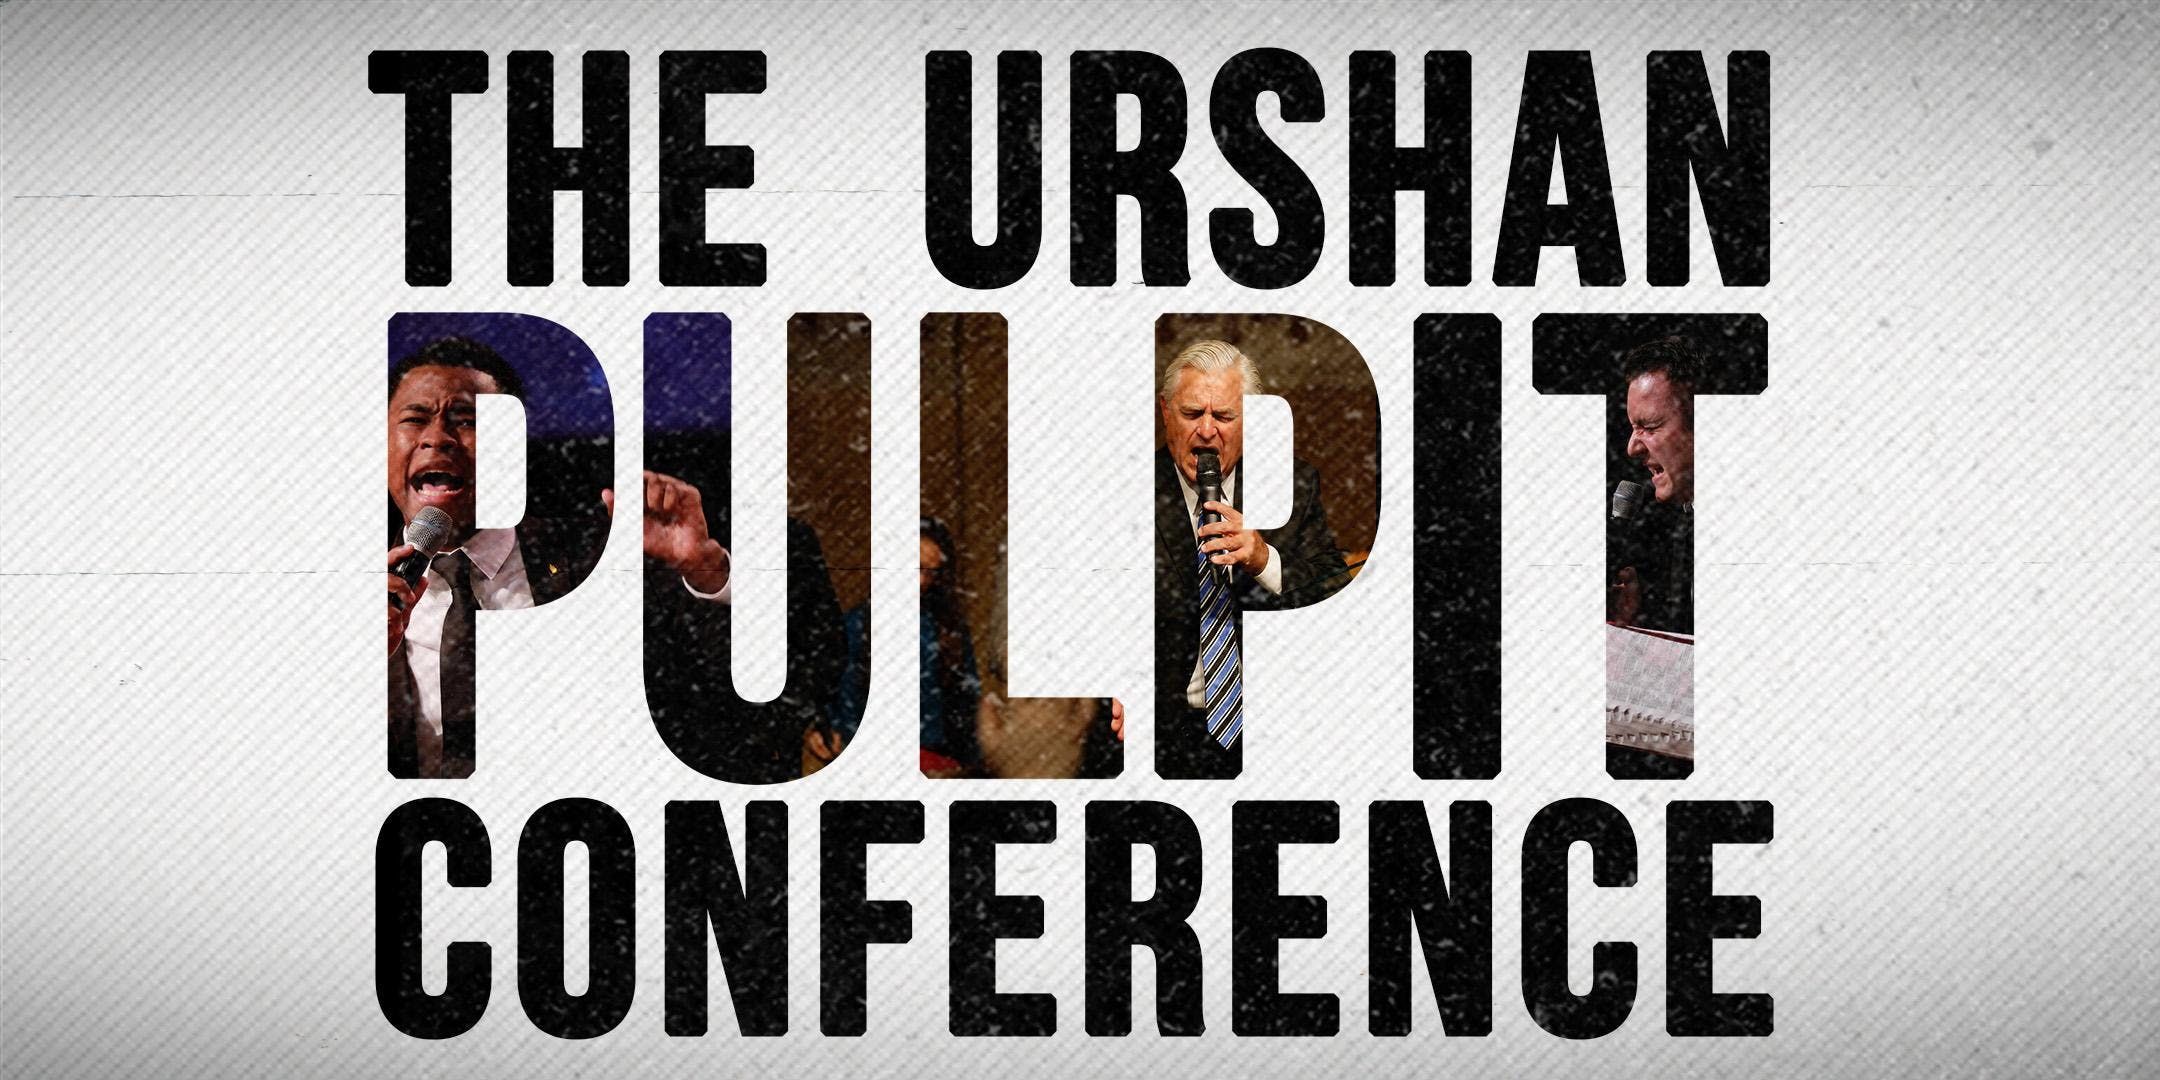 The Urshan Pulpit Conference